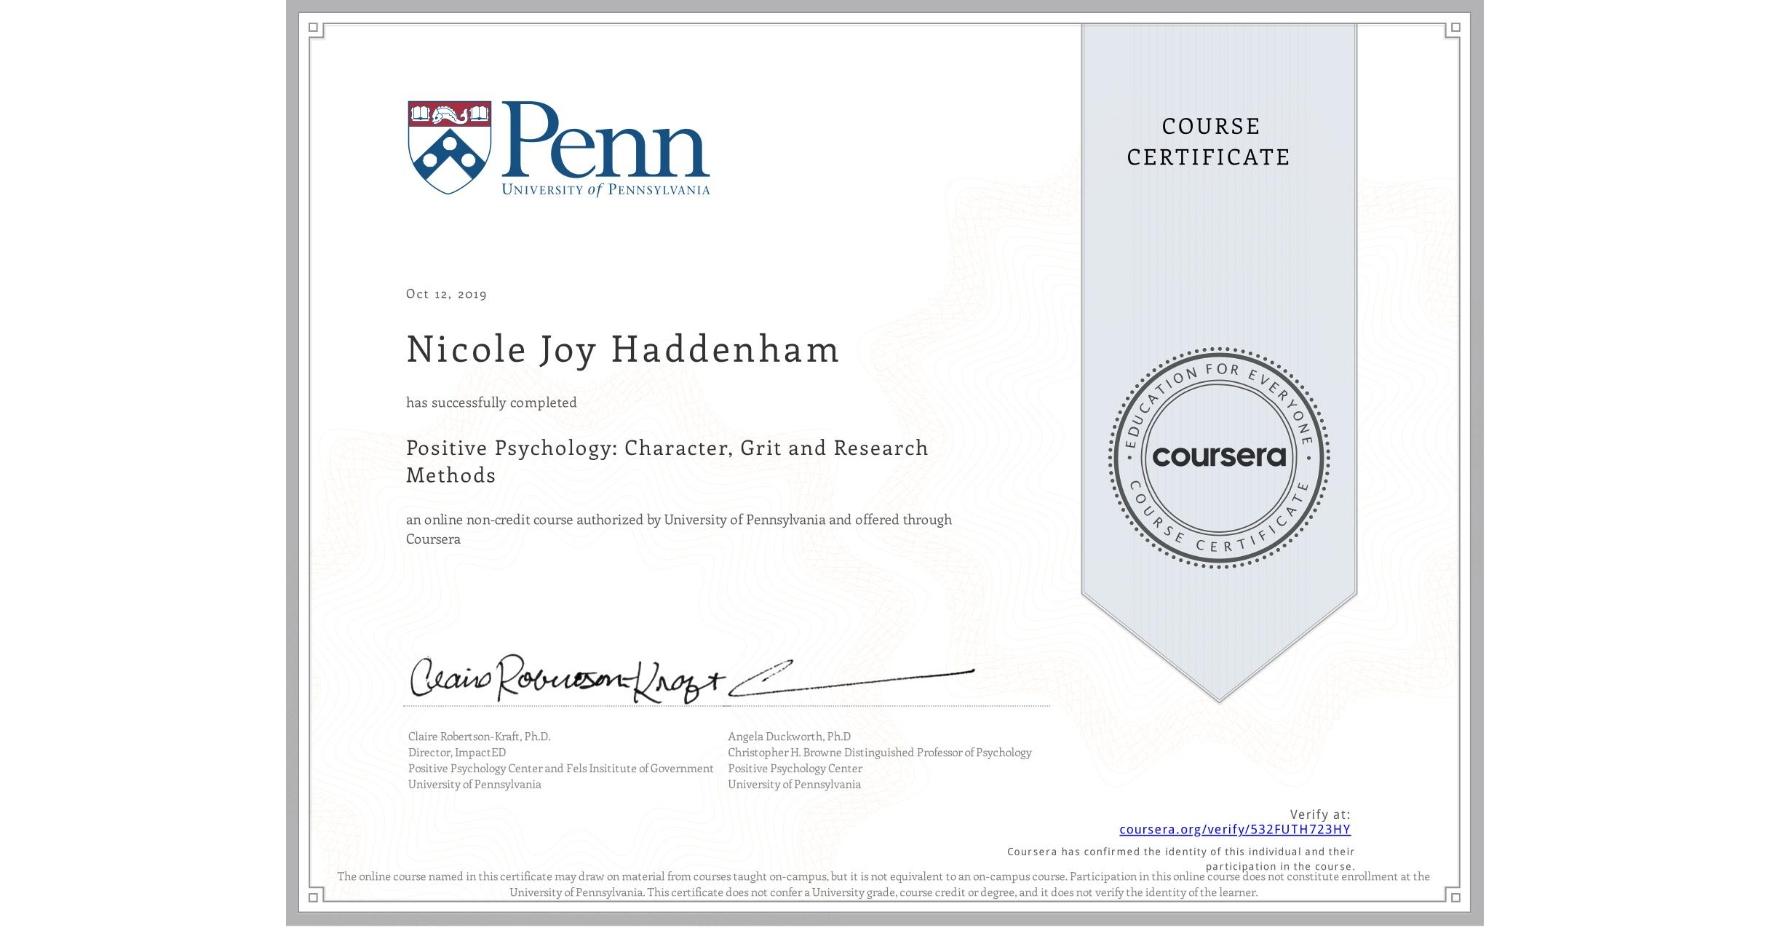 View certificate for Nicole Joy Haddenham, Positive Psychology: Character, Grit and Research Methods, an online non-credit course authorized by University of Pennsylvania and offered through Coursera